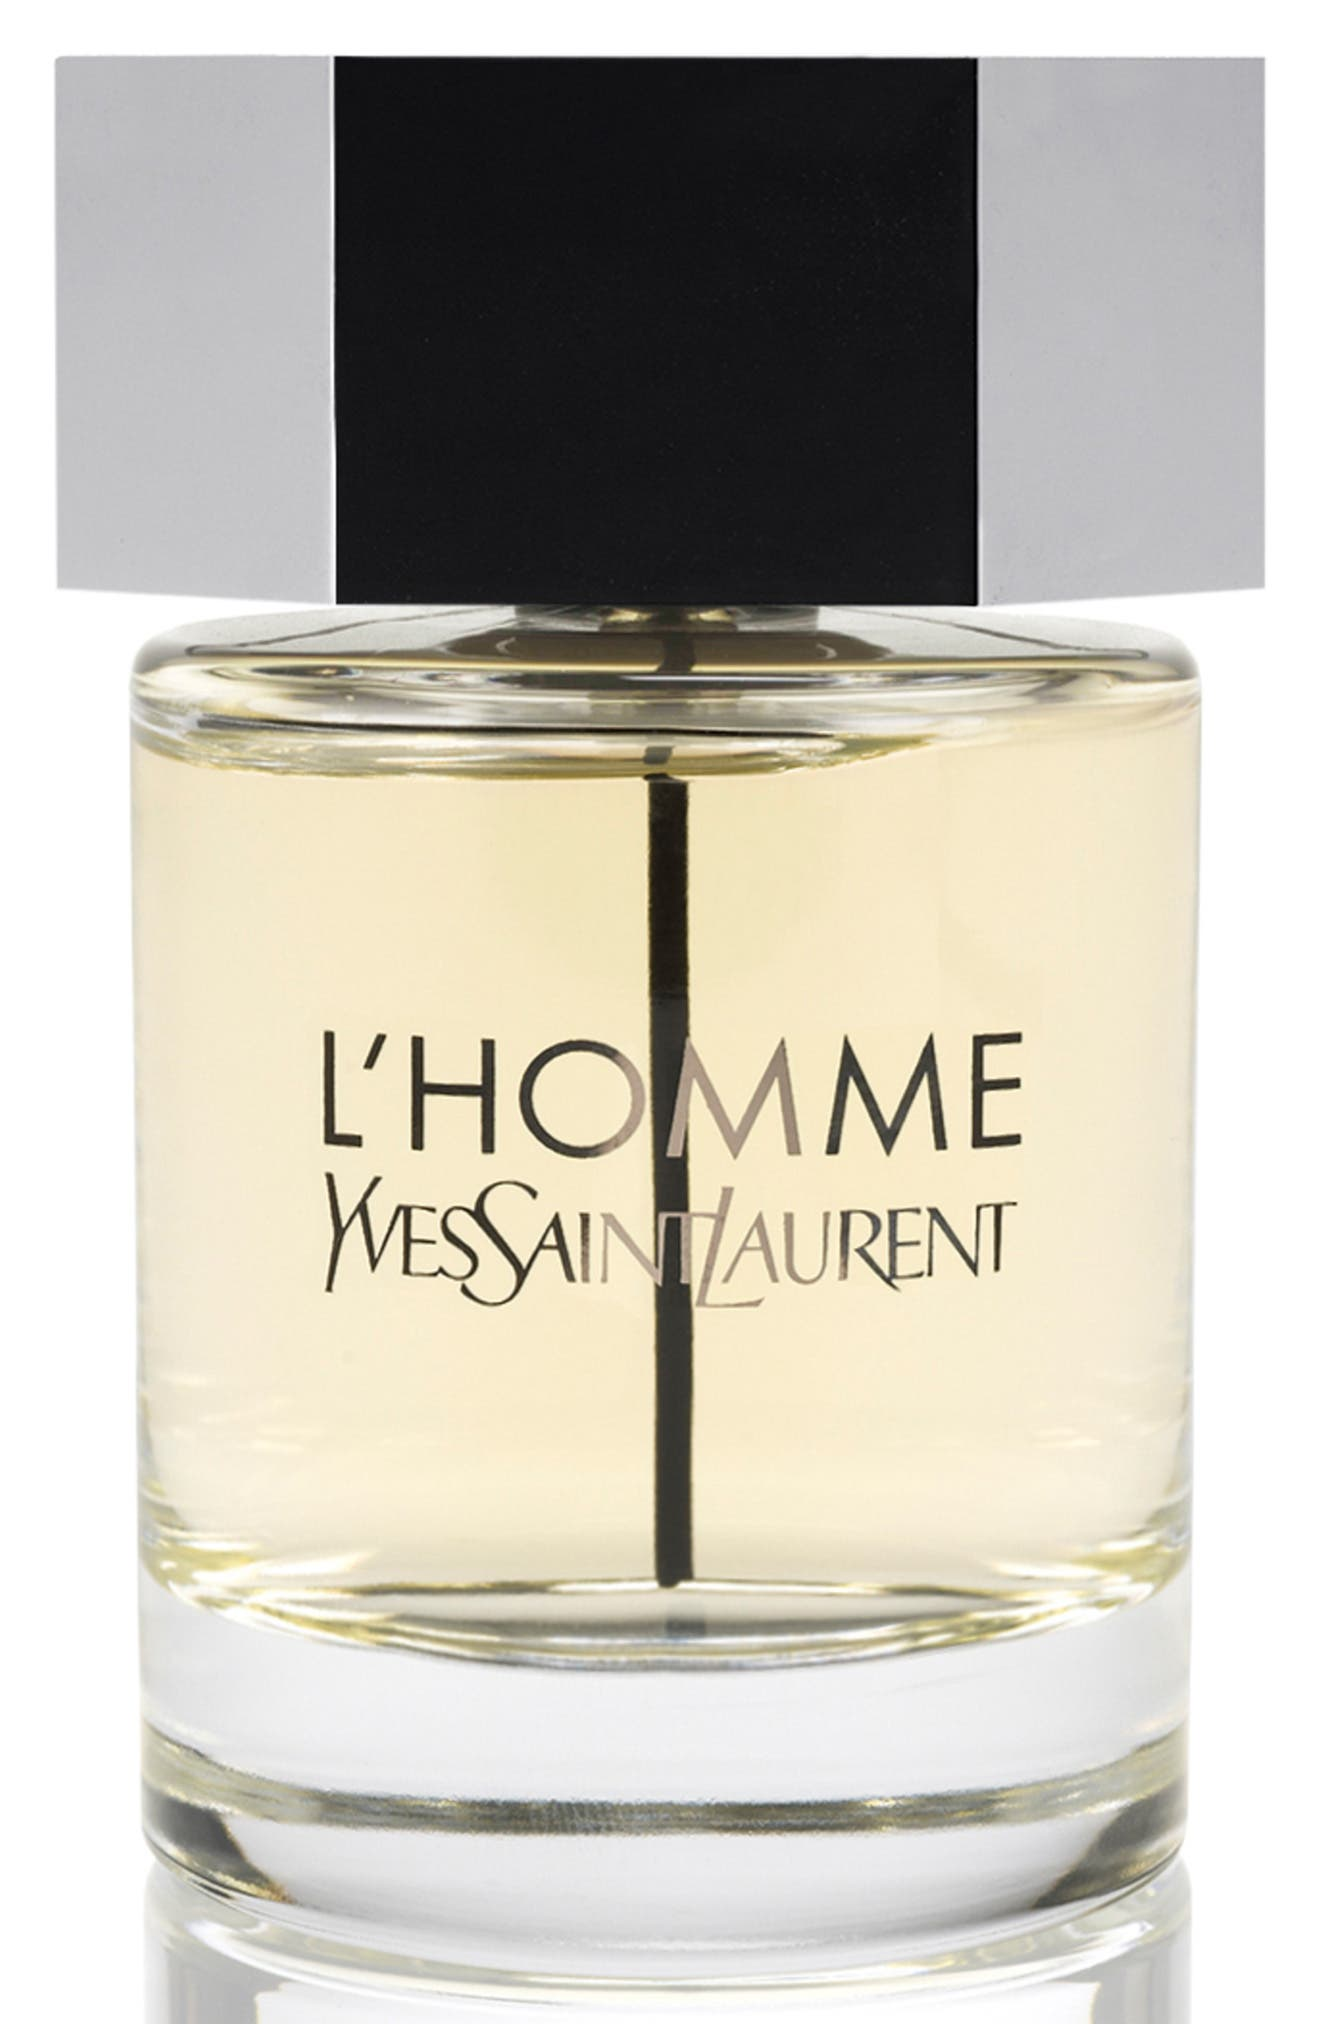 YVES SAINT LAURENT, L'Homme Eau de Toilette, Alternate thumbnail 2, color, NO COLOR